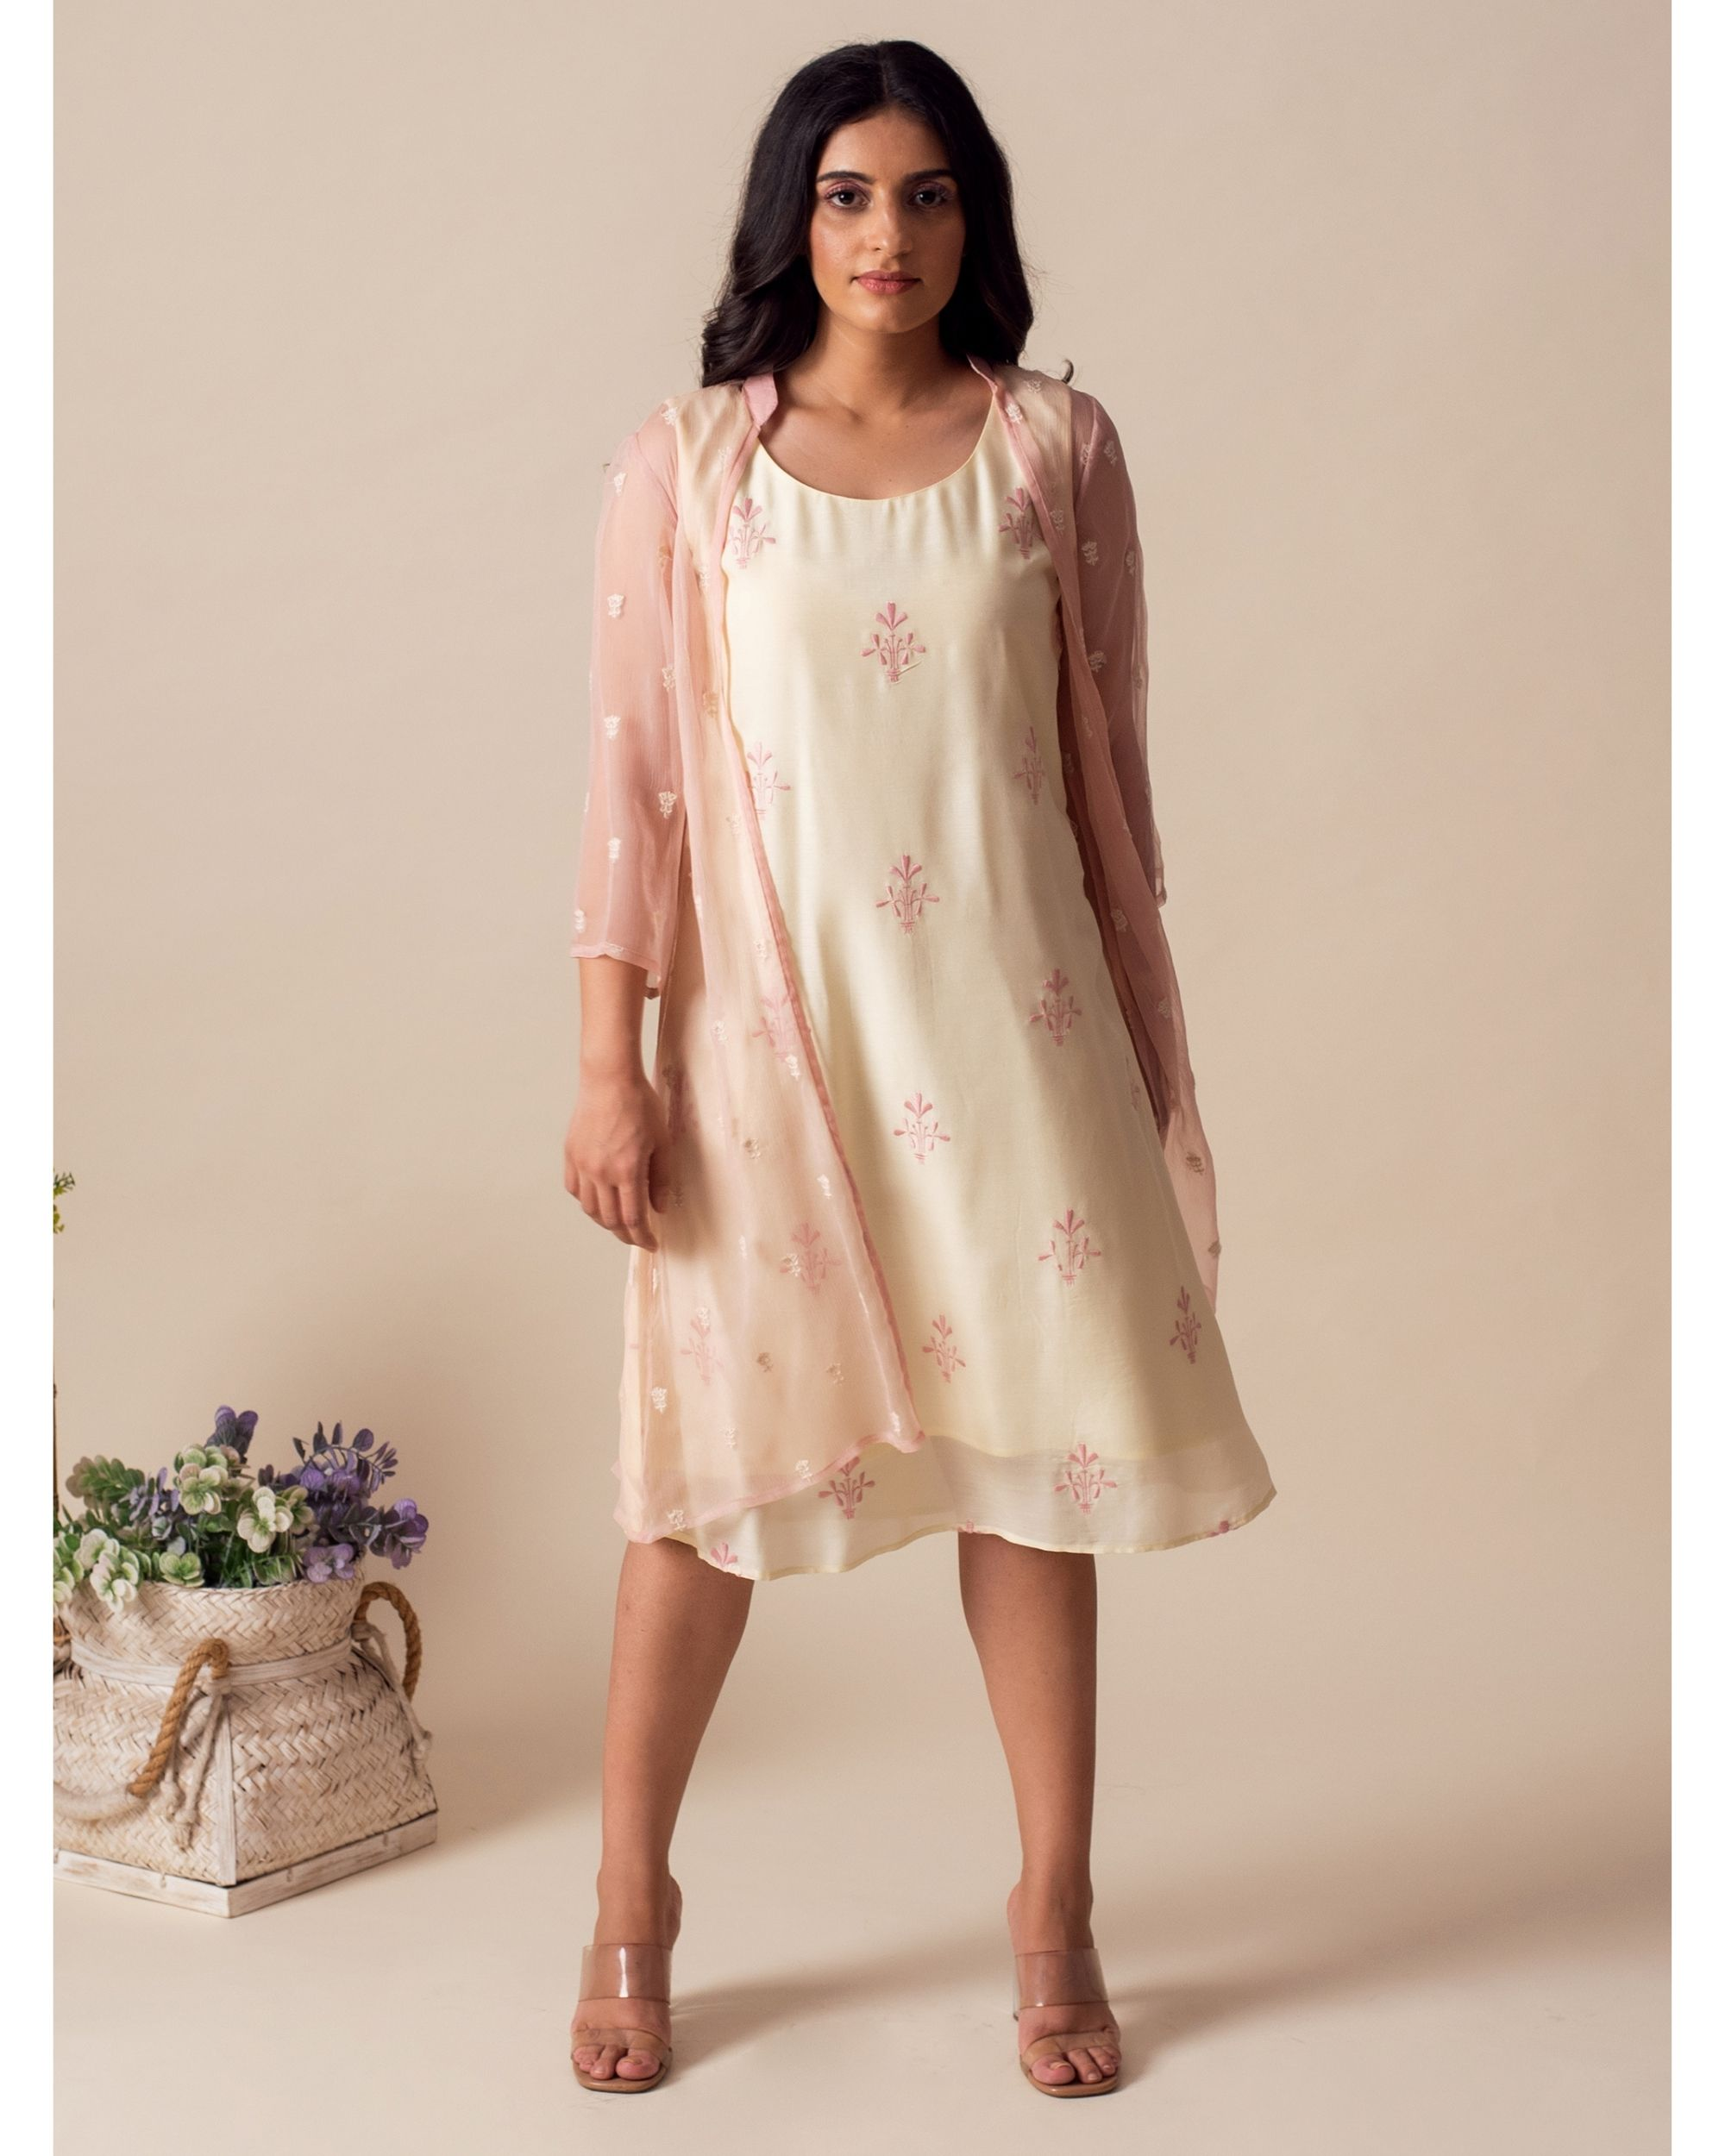 Light lemon embroidered dress with chiffon cover-up - Set Of Two